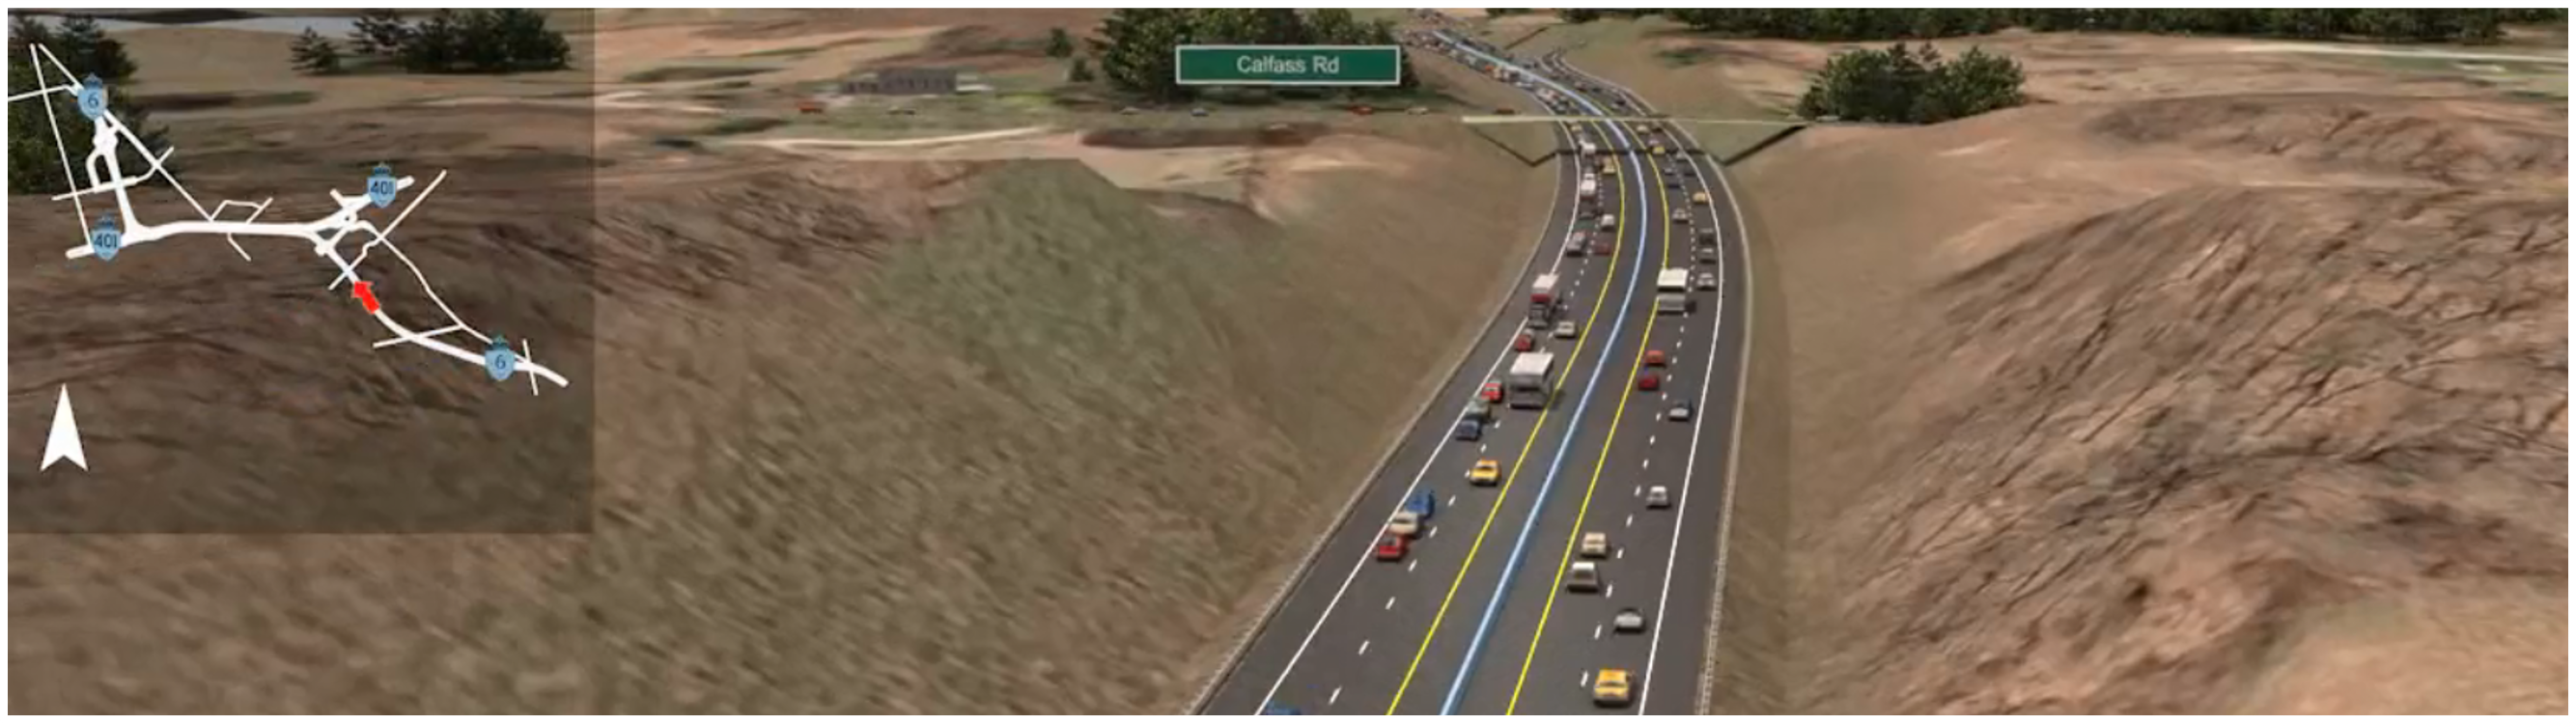 Computer rendering of what the new controlled access four-lane Highway 6 alignment would potentially look like. Rendering is an image of new Highway 6 facing North East, towards Highway 401 with two lanes in each direction.